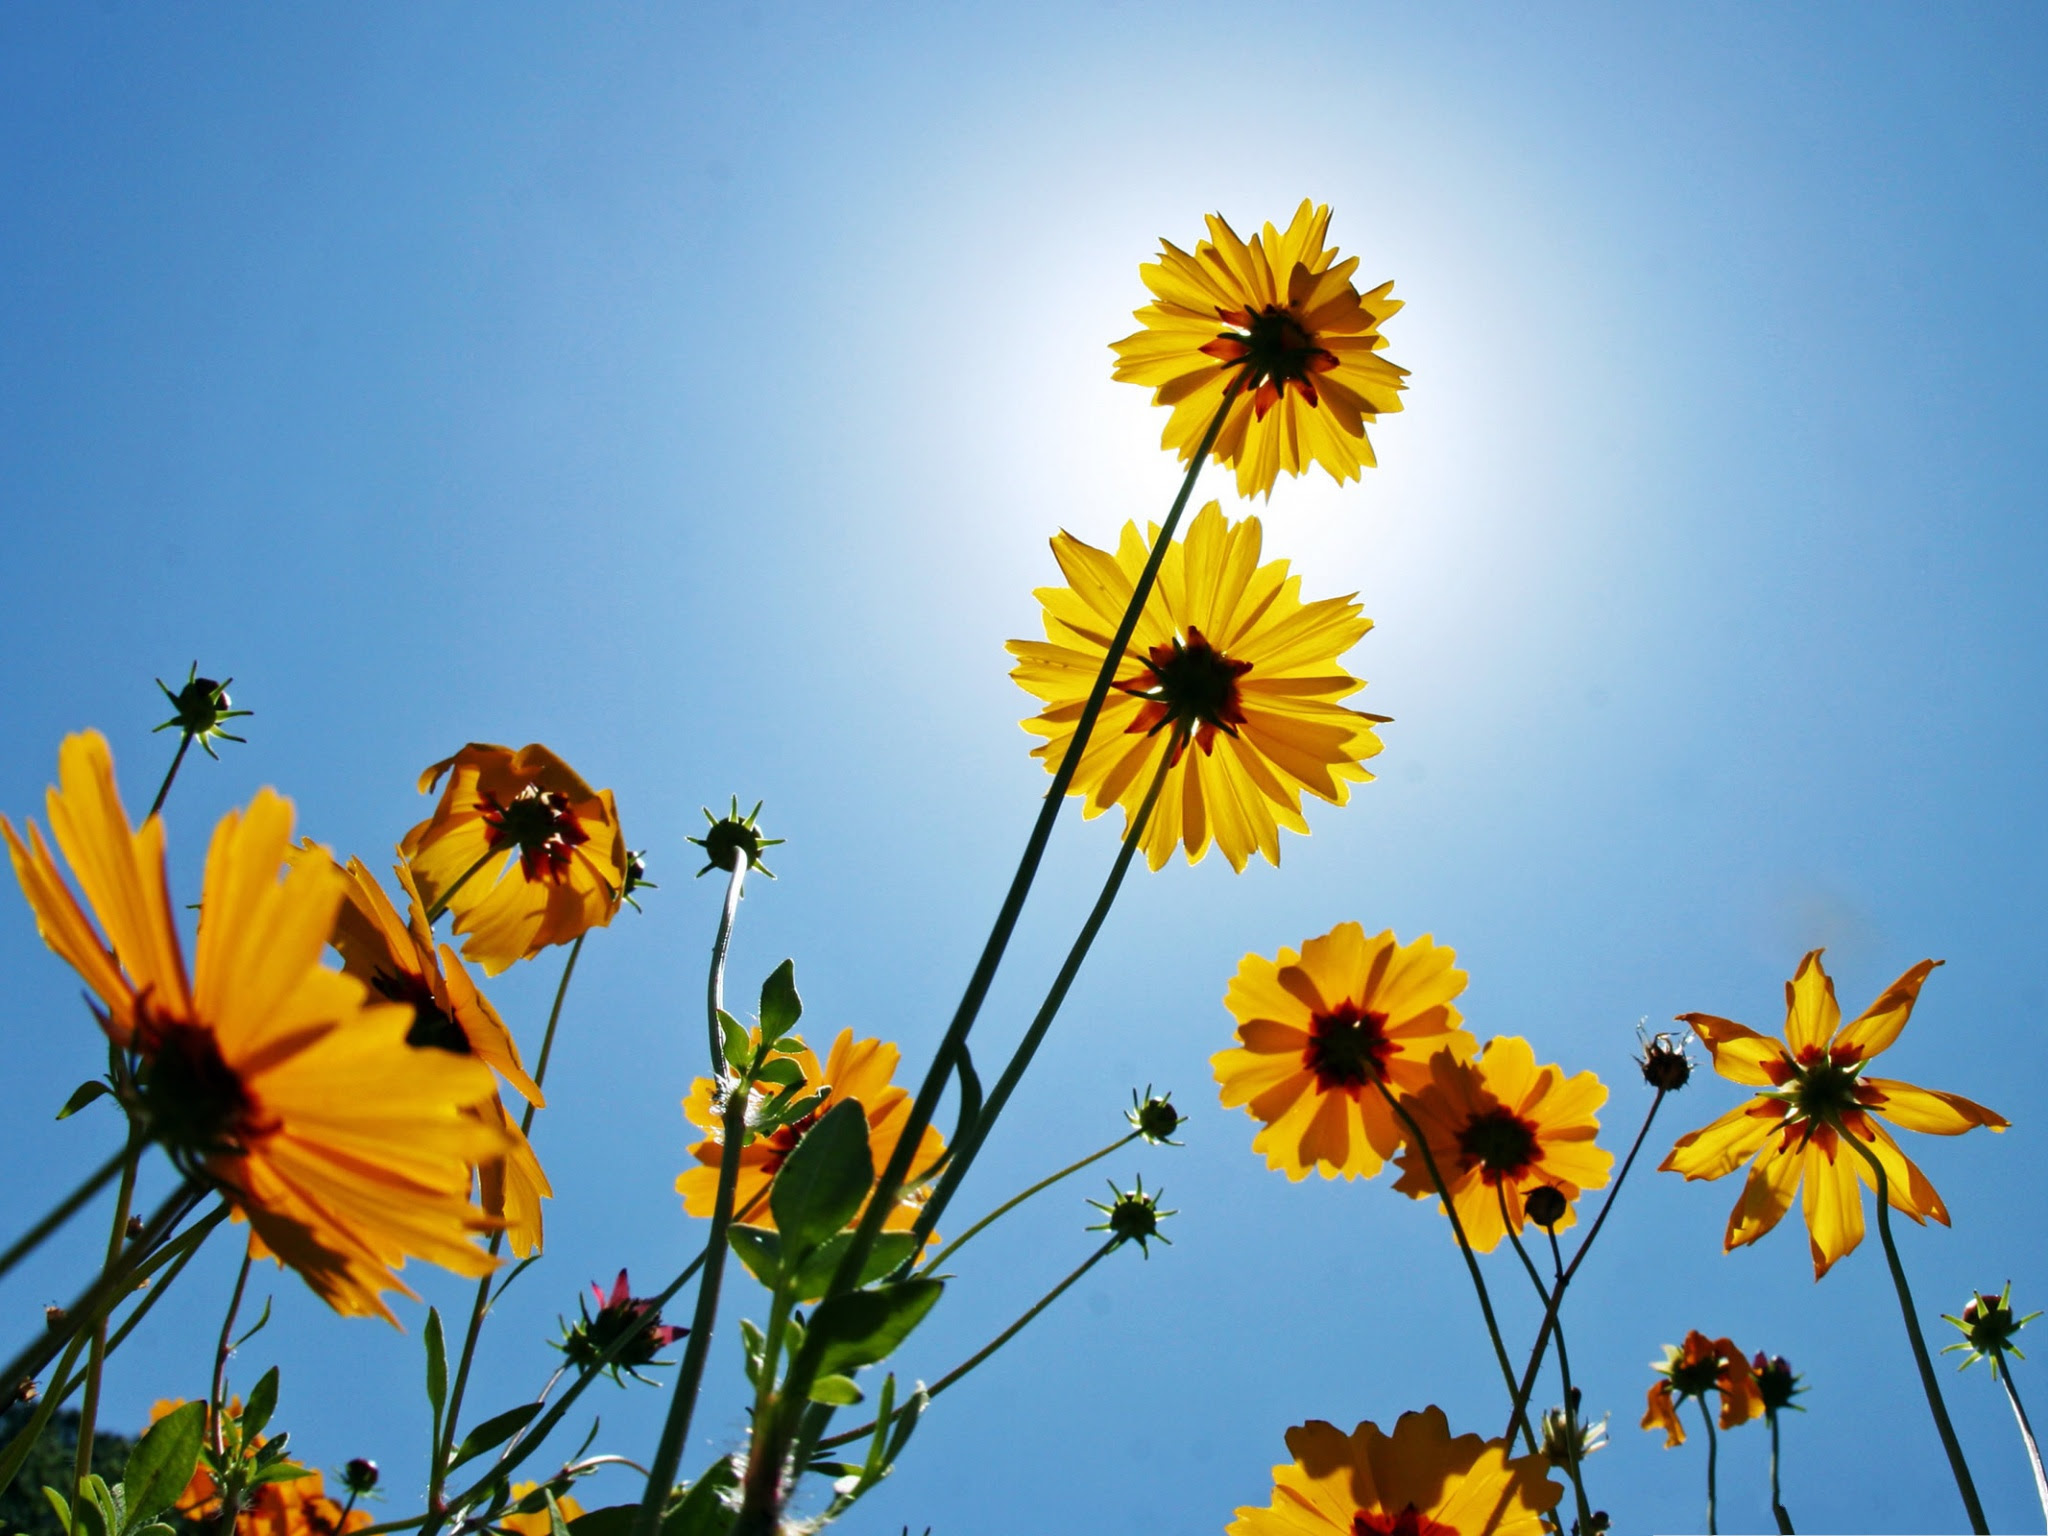 http://74211.com/wallpaper/picture_big/Yellow-Flowers-Picture-Blooming-Little-Flower-Under-the-Blue-Sky-Amazing-Scenery.jpg